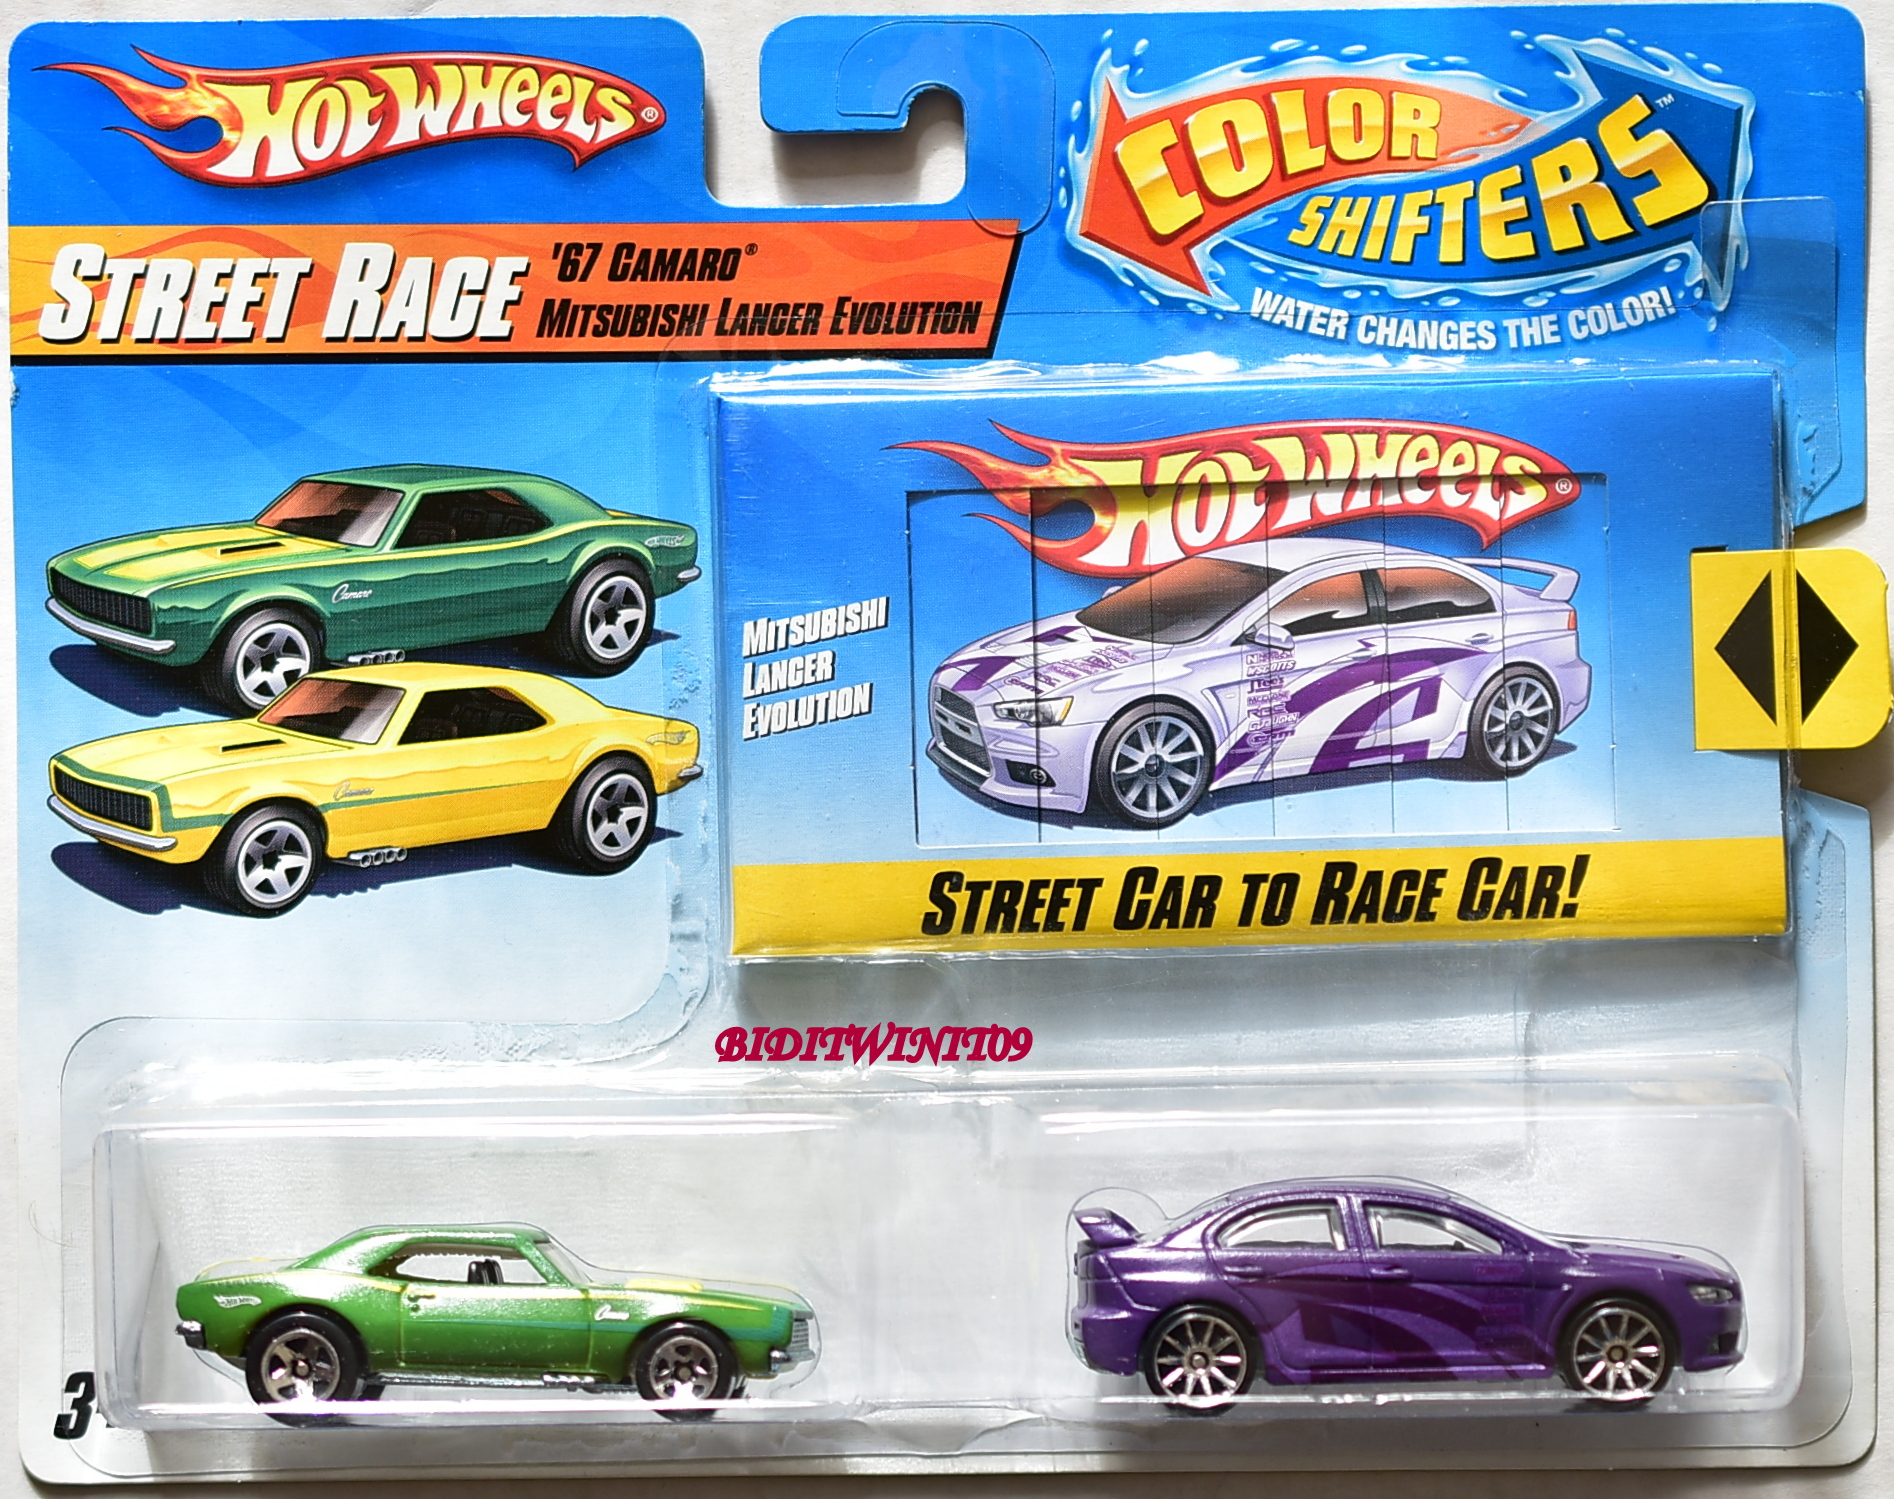 HOT WHEELS COLOR SHIFTERS STREET RACE '67 CAMARO - MITSUBISHI LANCER 2 PACK E+